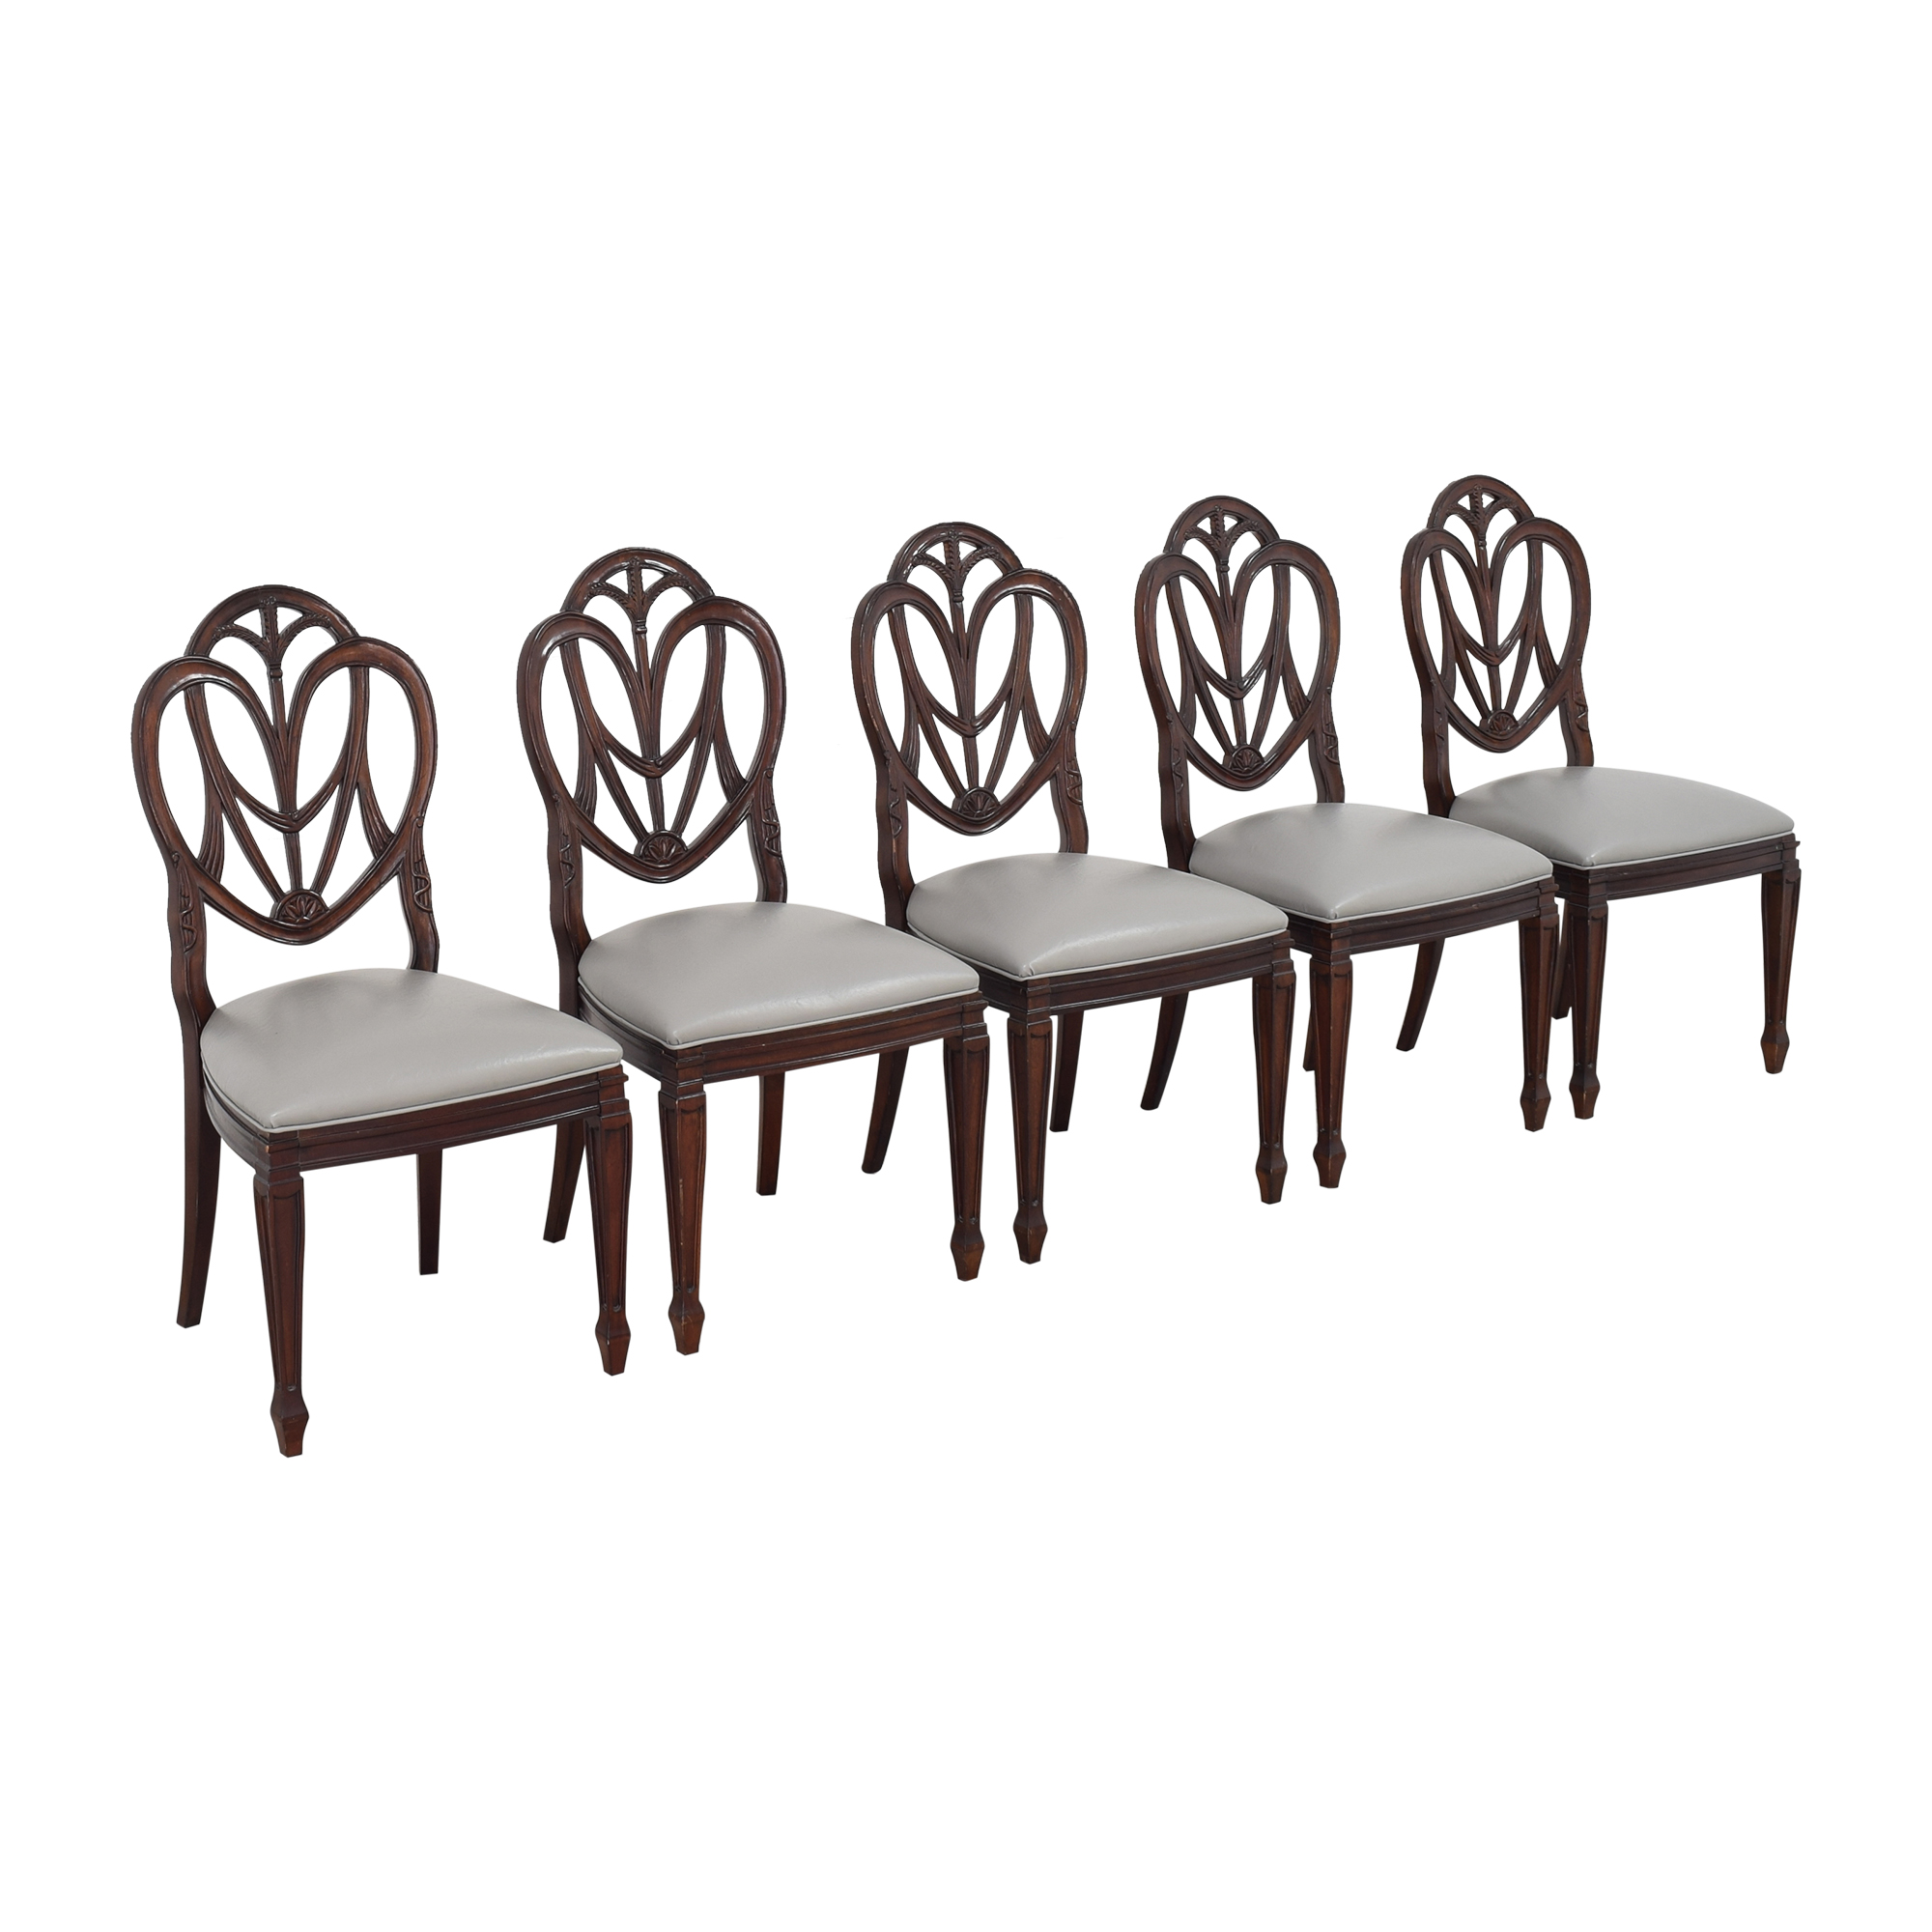 buy Drexel Heritage British Accents Dining Chairs Drexel Heritage Dining Chairs